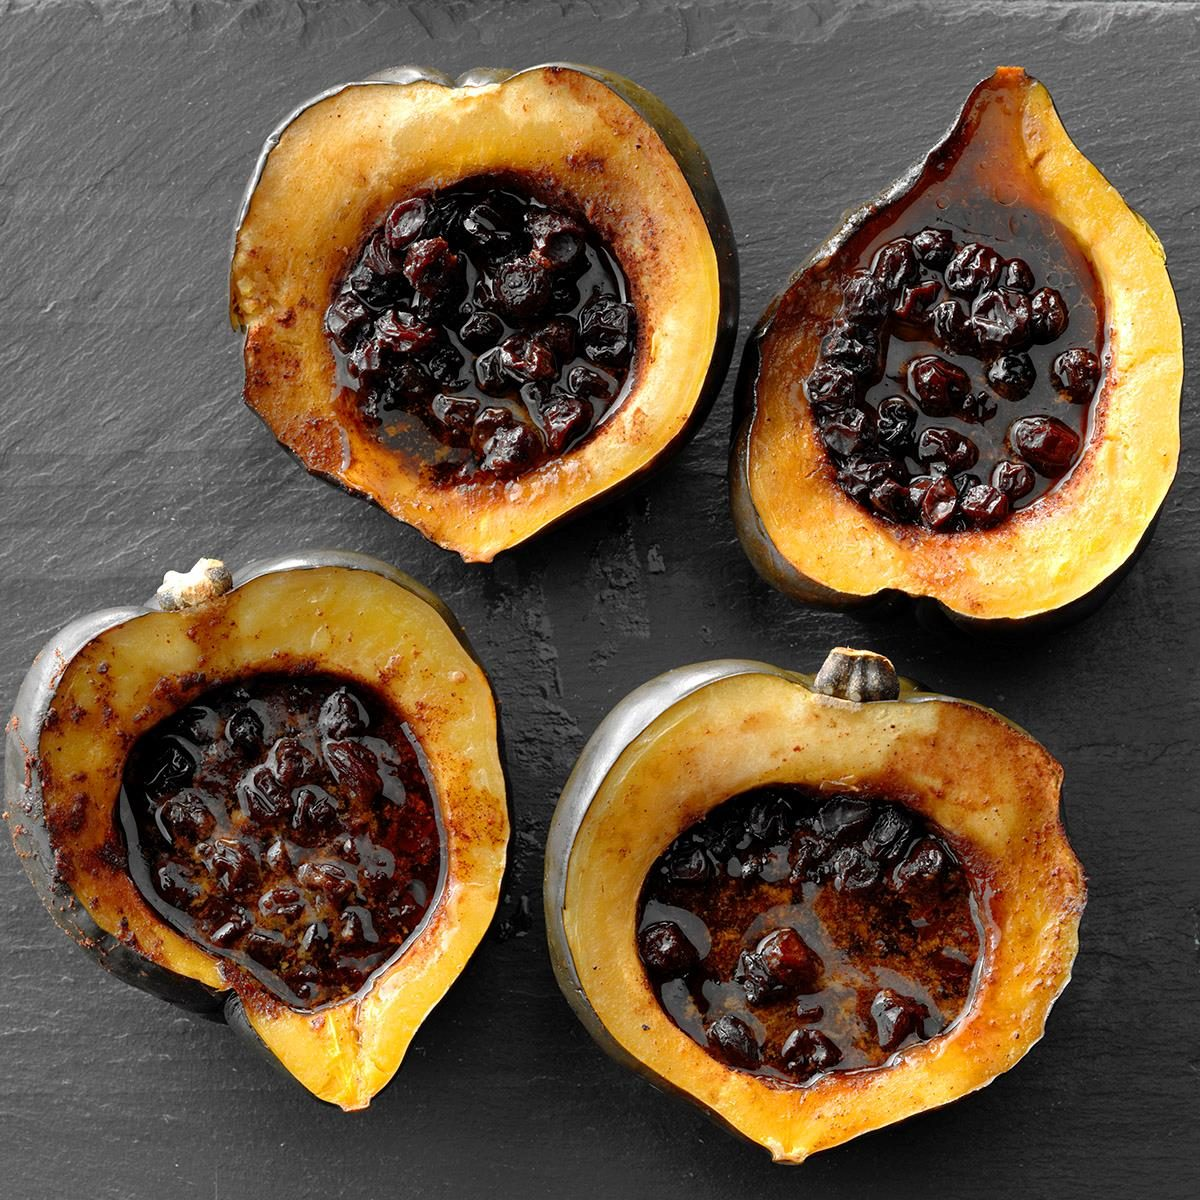 Day 31: Spiced Acorn Squash